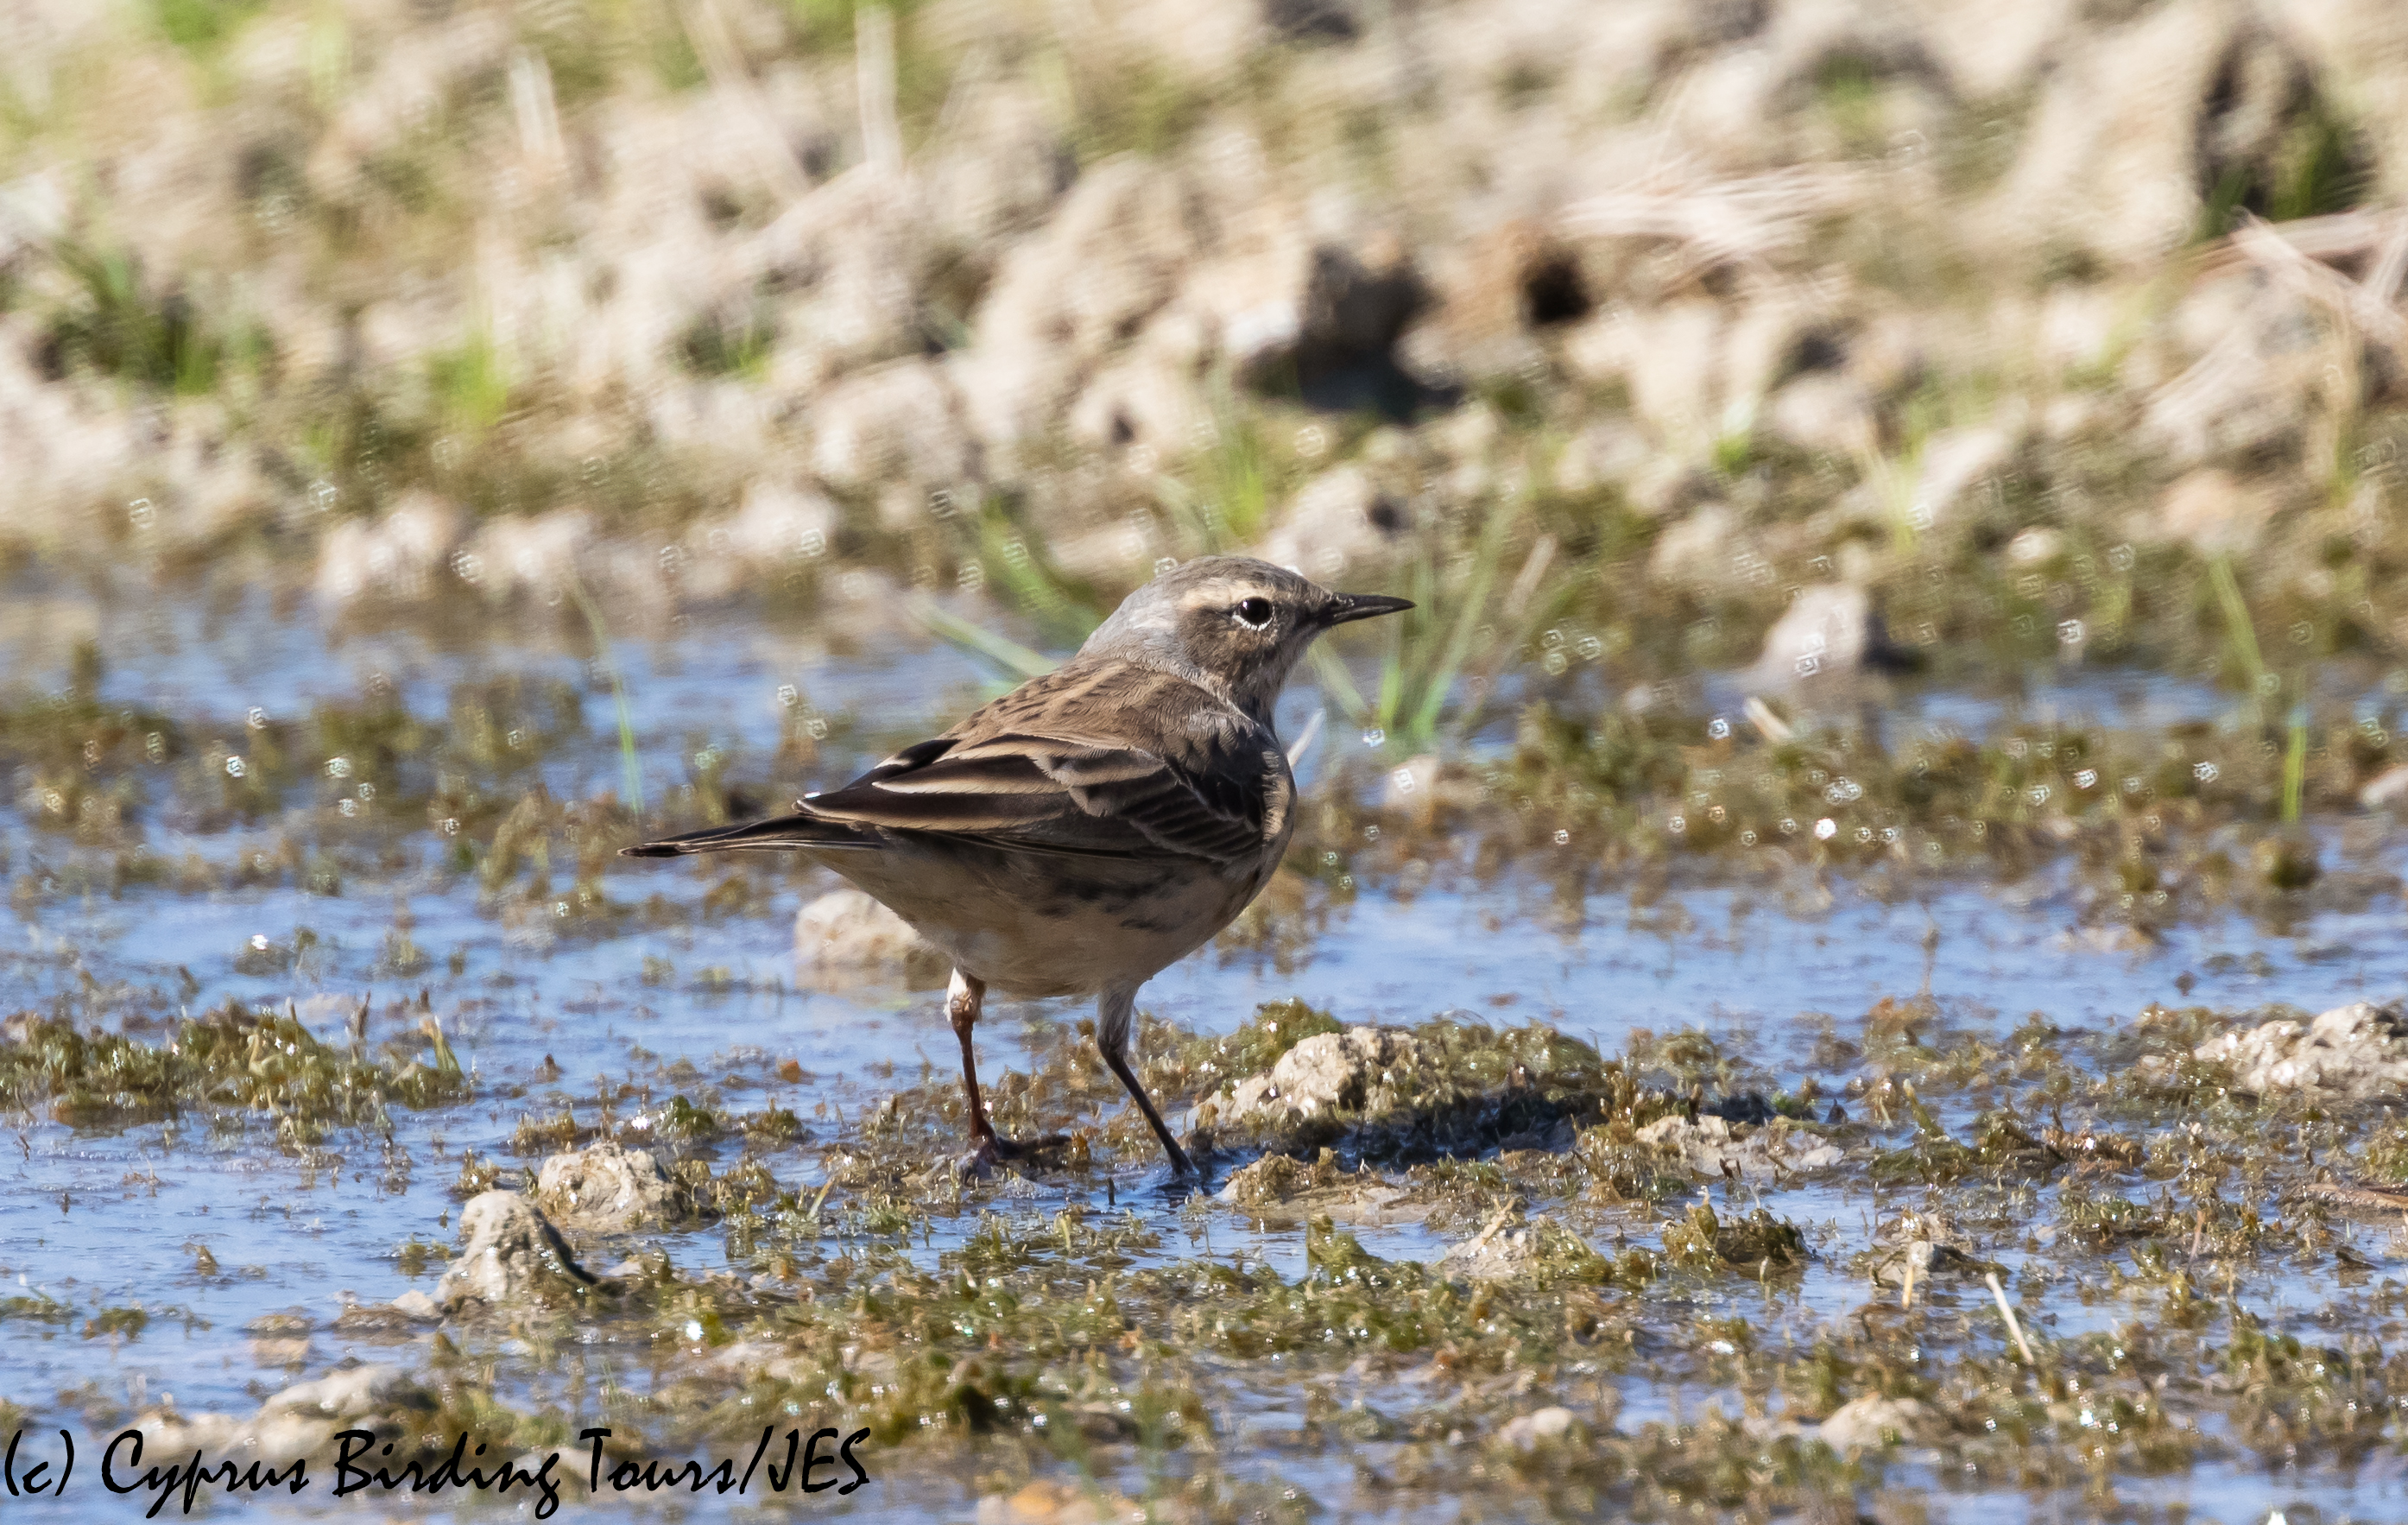 Water Pipit, Petounta 8th March 2020 (c) Cyprus Birding Tours